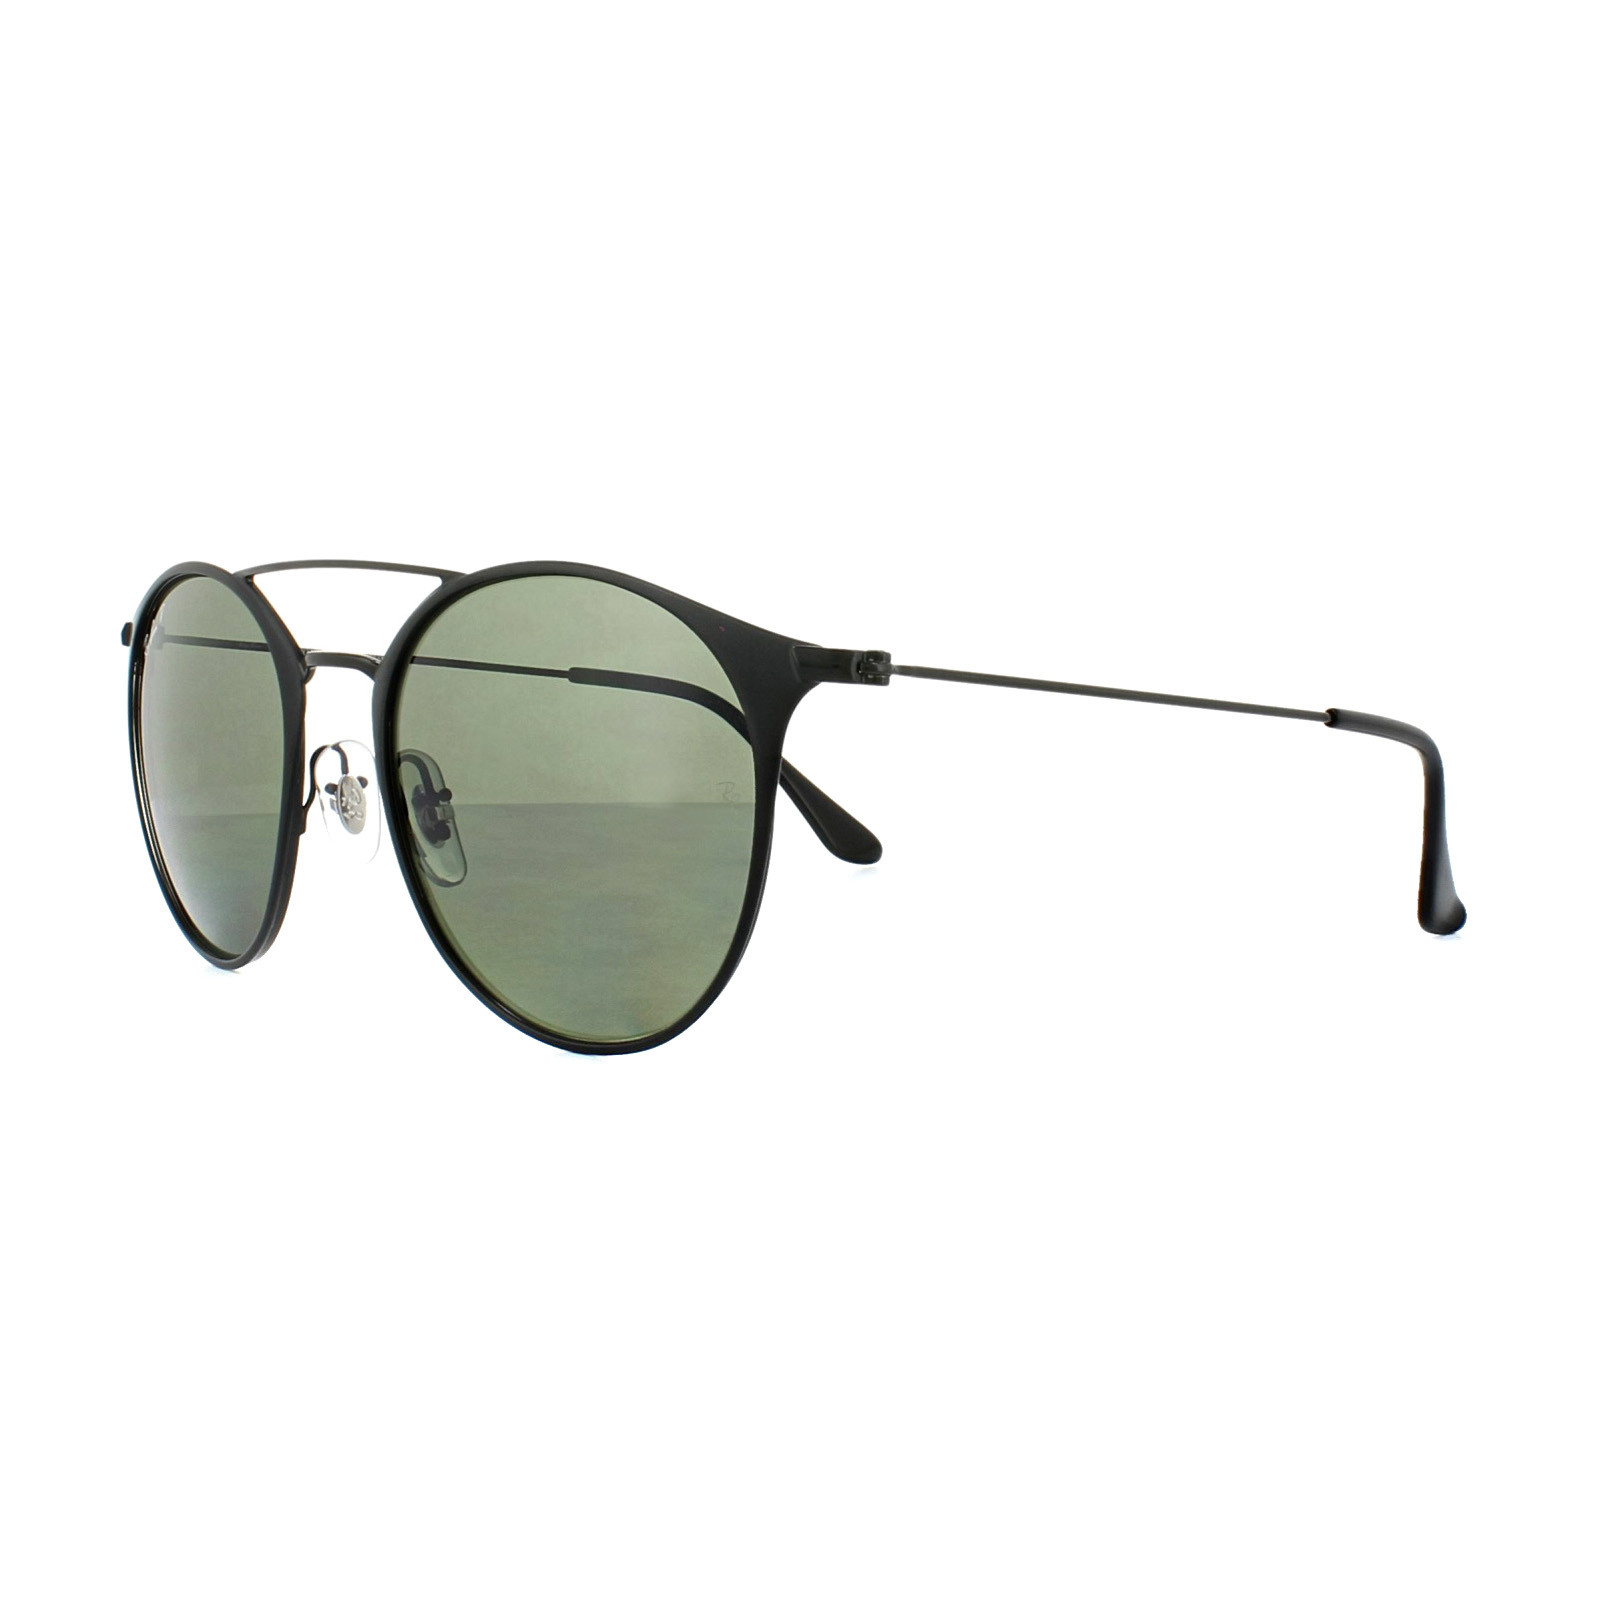 a14060b22d Ray-Ban Sunglasses 3546 186 9A Black Green Polarized 8053672672428 ...